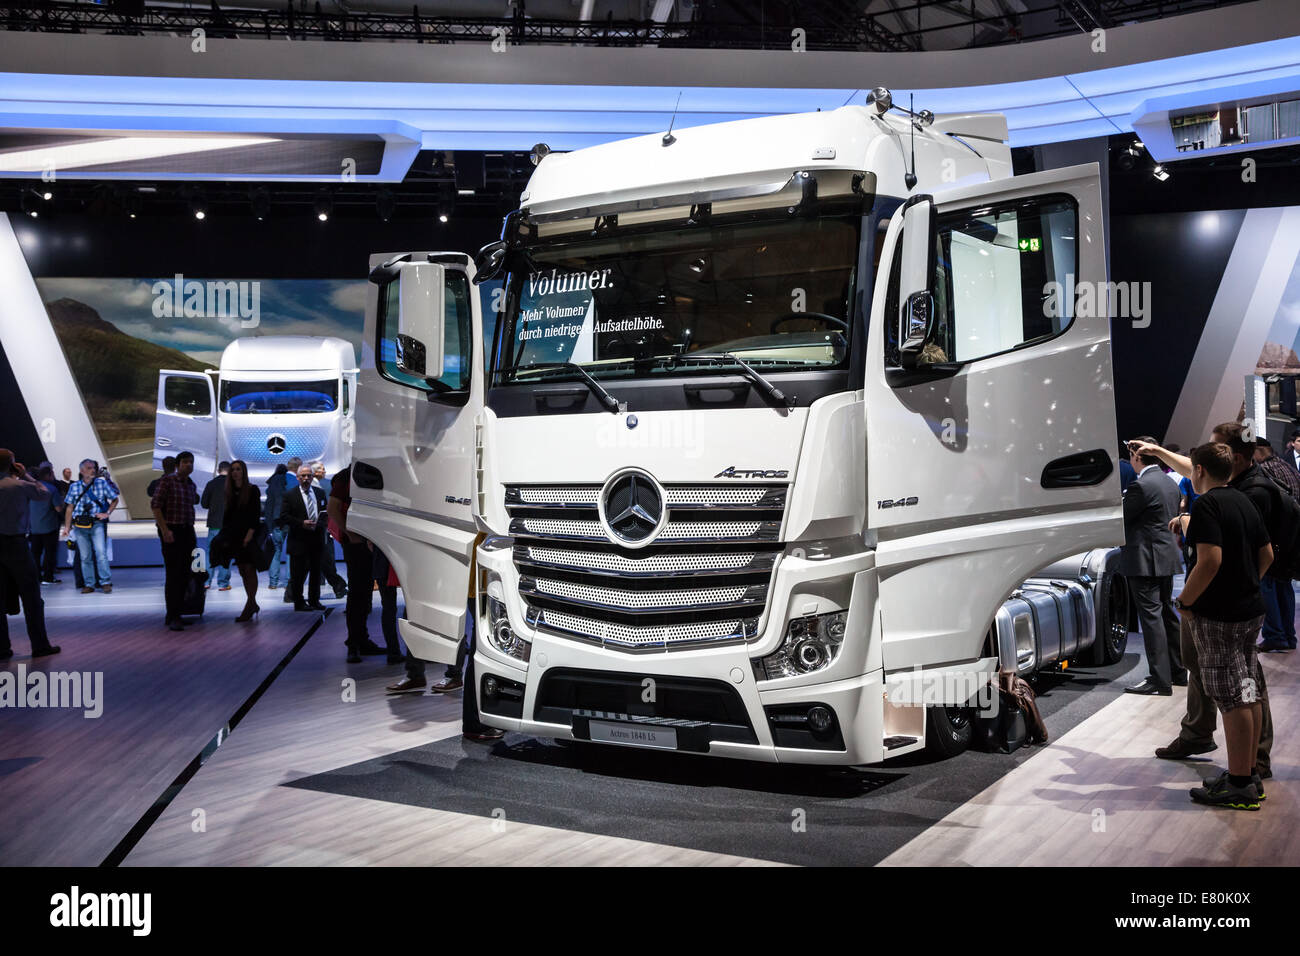 Mercedes benz 1848 axor more information - Mercedes Benz Actros 1848 Ls Truck At The 65th Iaa Commercial Vehicles 2014 In Hannover Germany